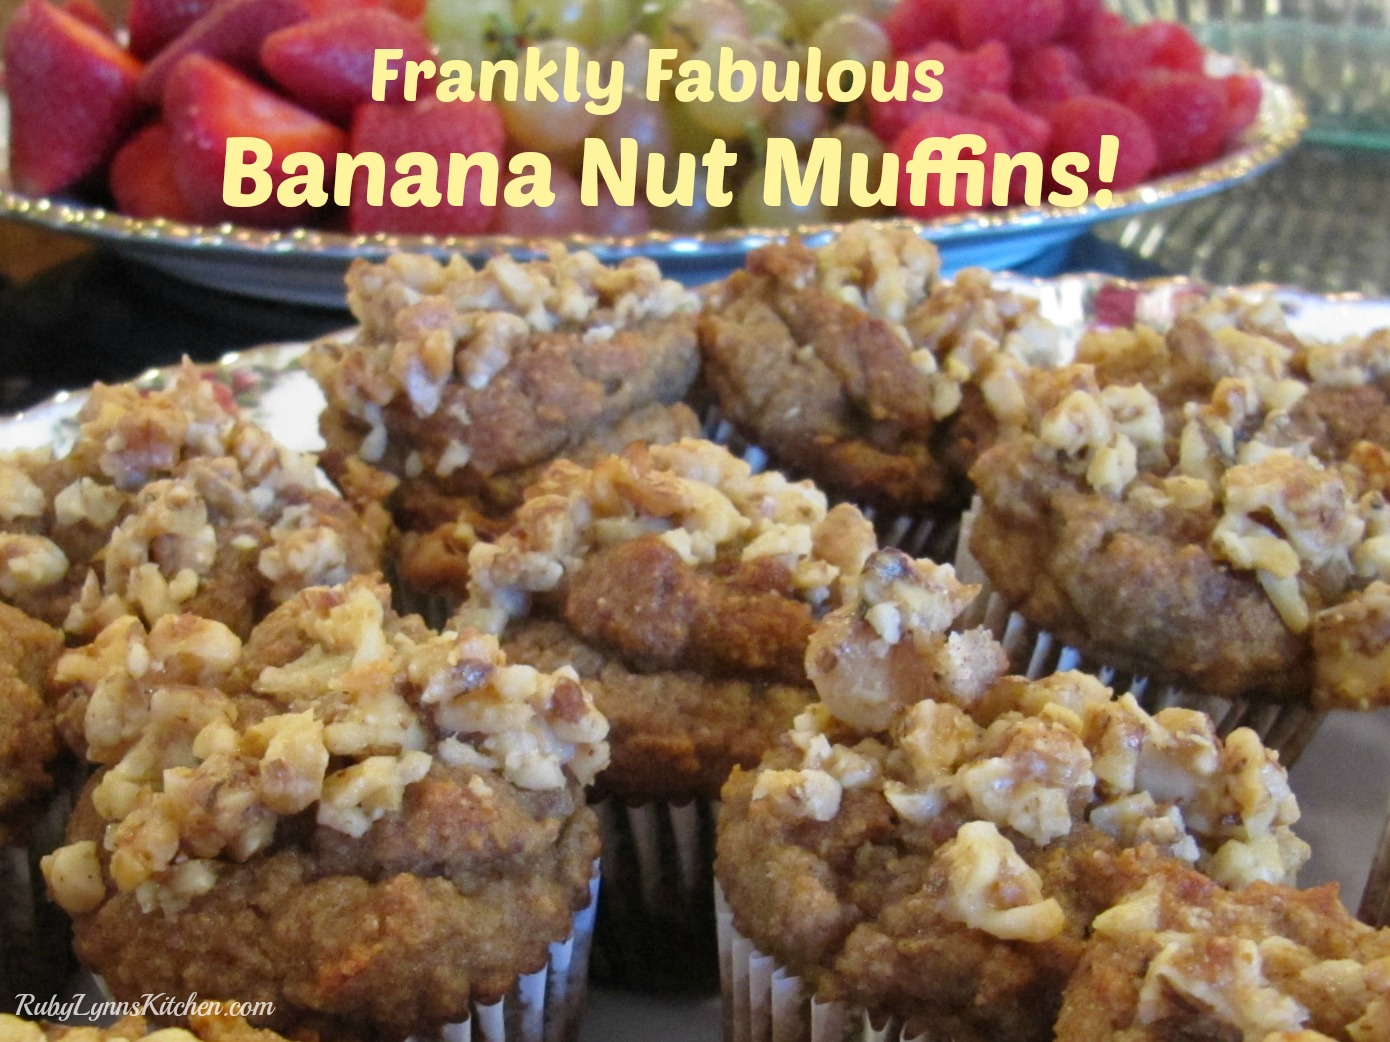 Frankly Fabulous Paleo Banana Nut Muffins